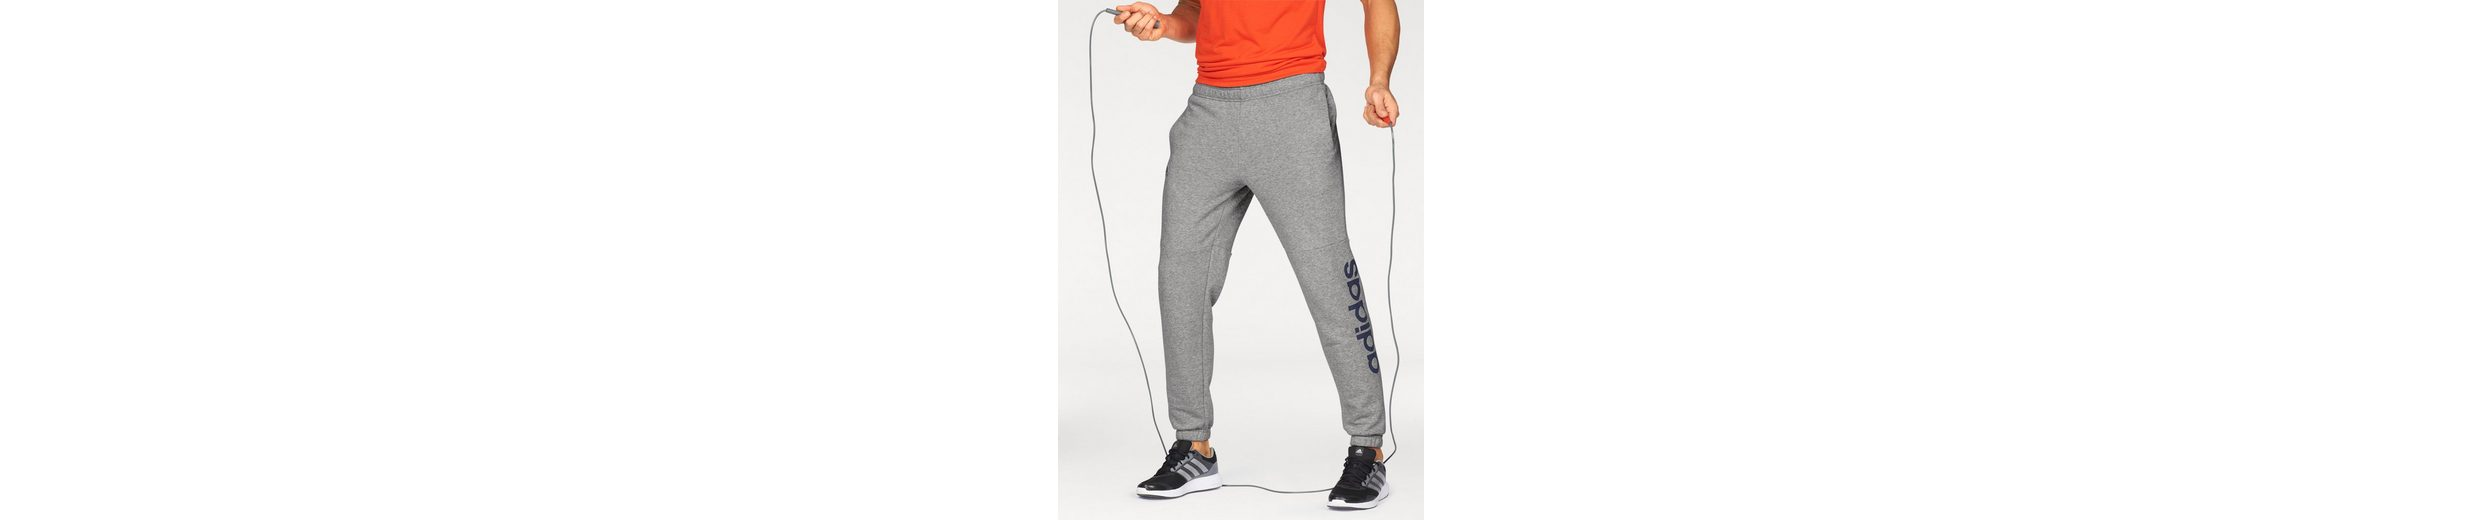 PANT TERRY ESSENTIALS Performance TAPERED Jogginghose LINEAR adidas FRENCH Performance adidas gqxR6Rwfv